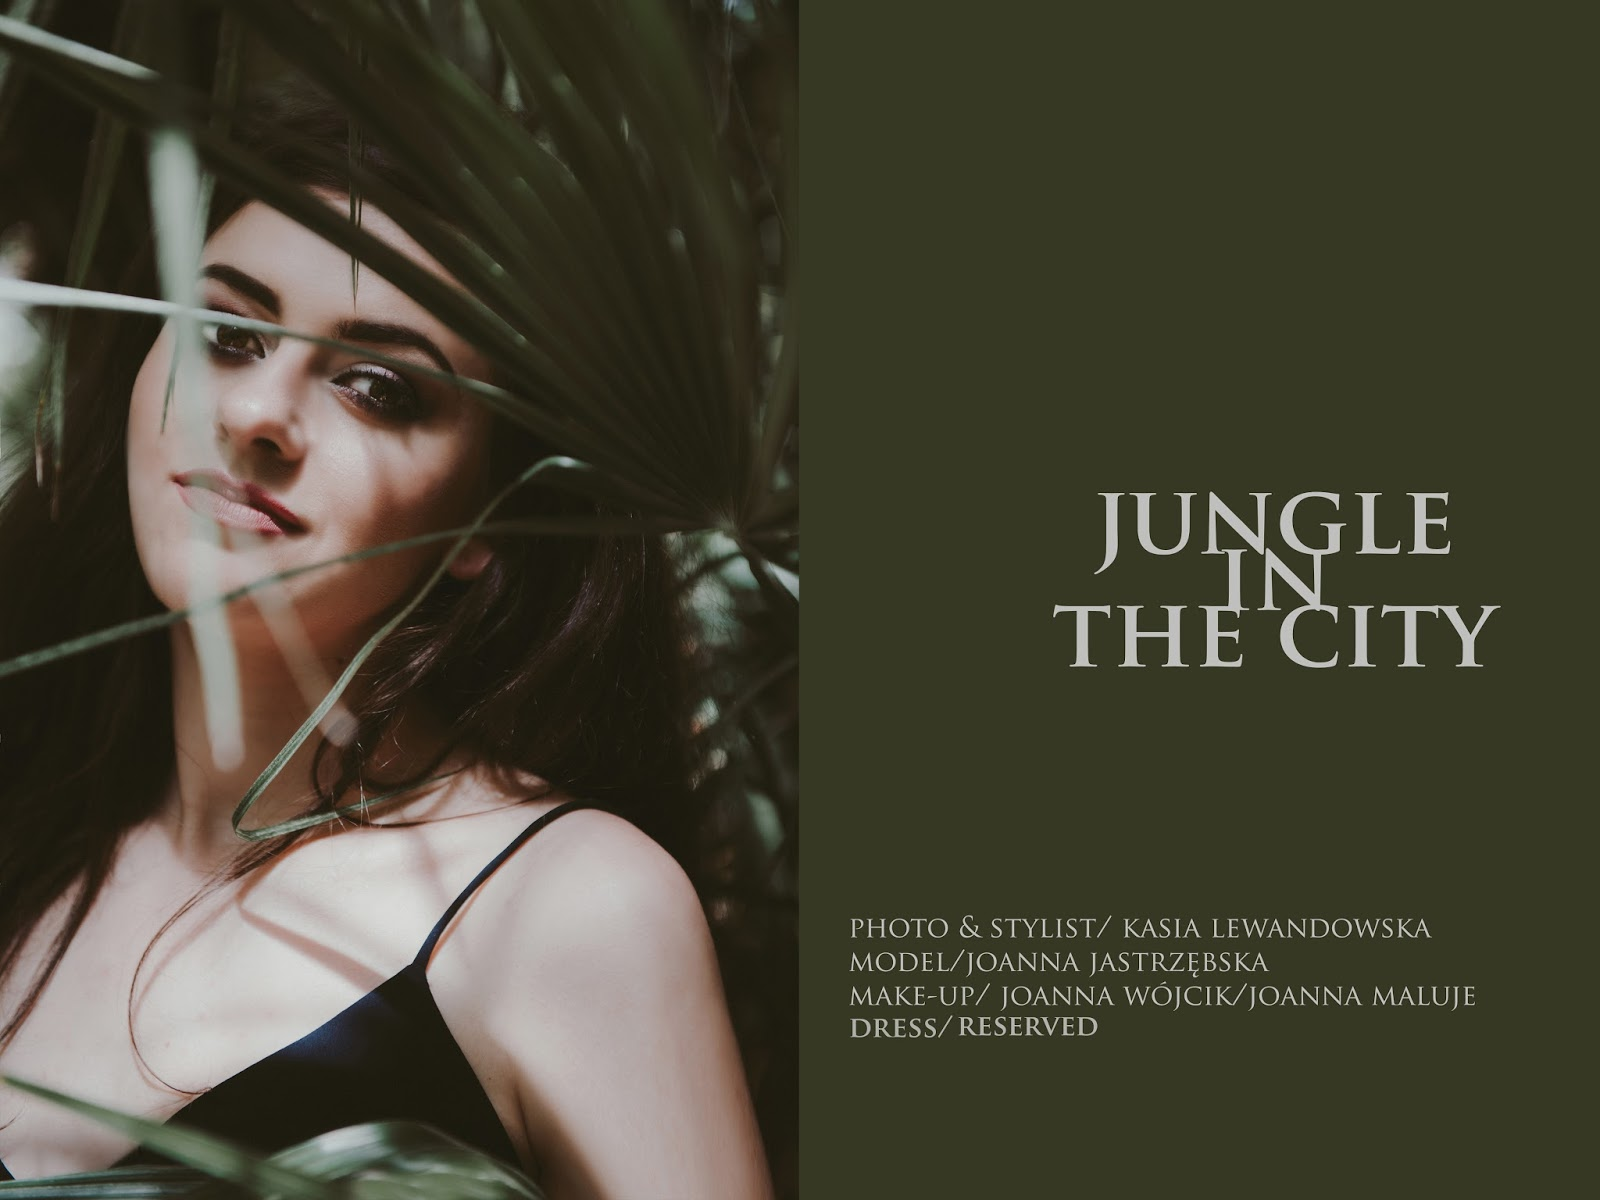 JUNGLE IN THE CITY